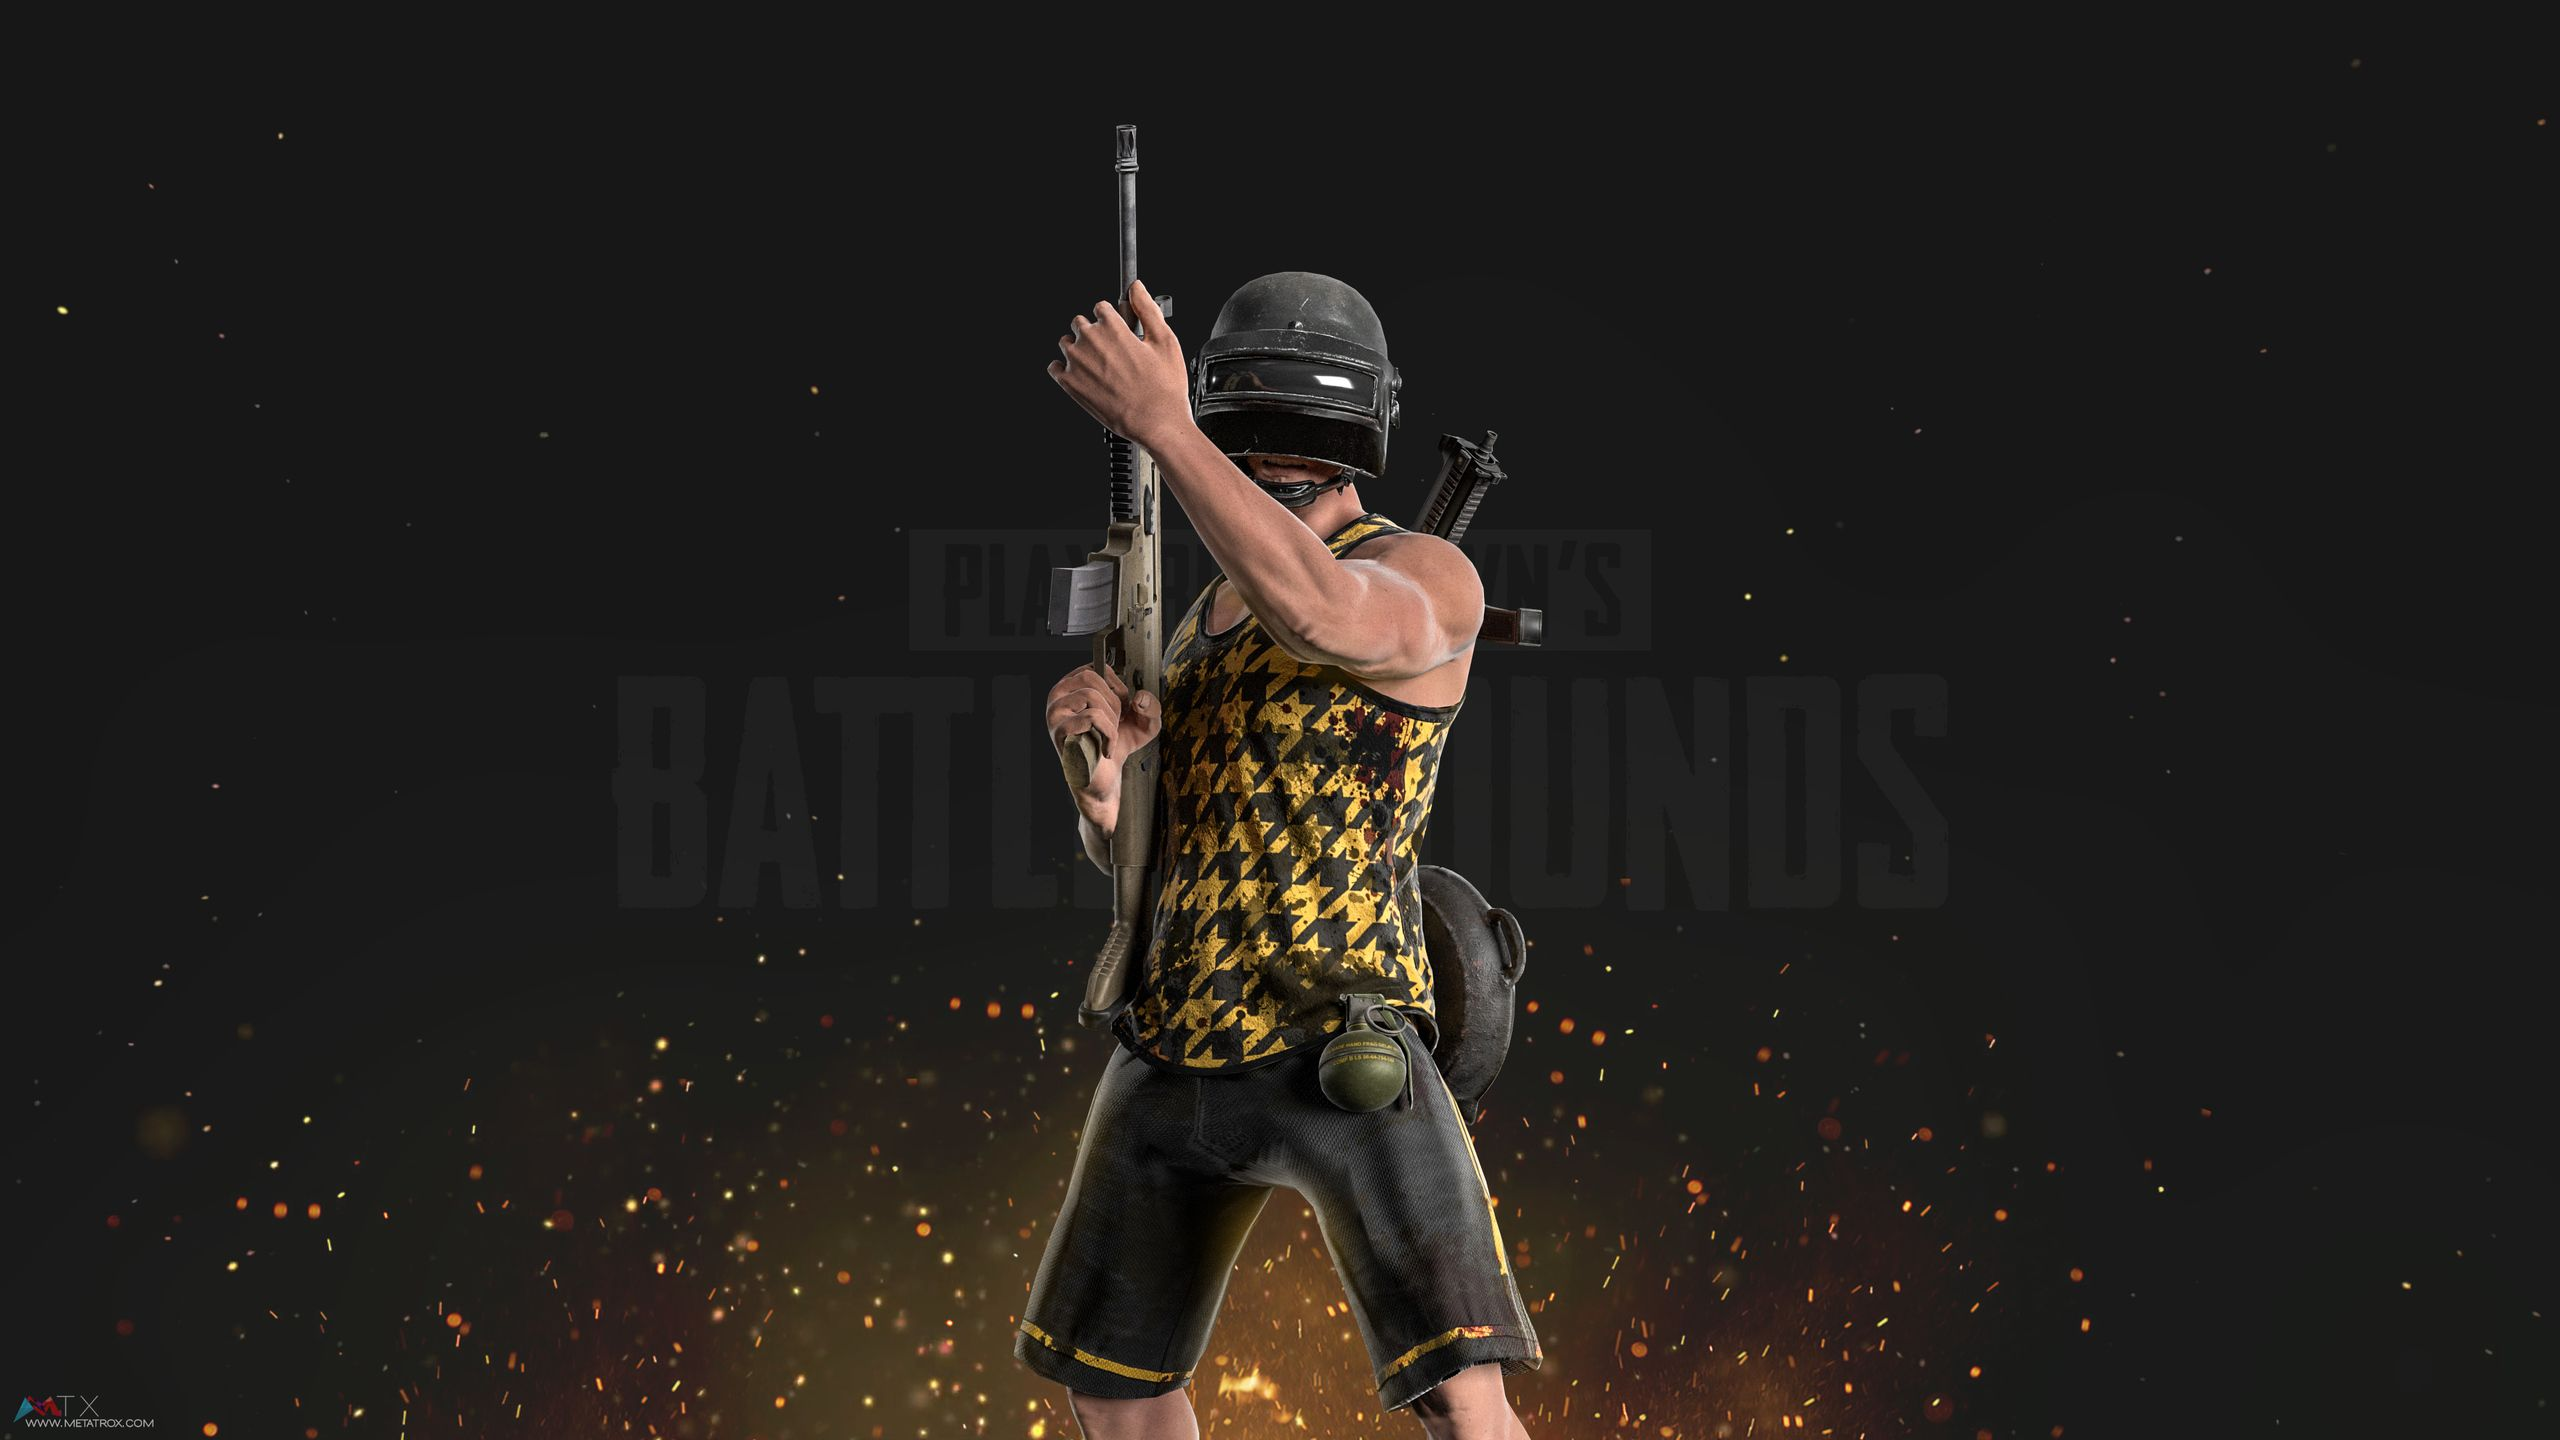 PUBG 1440P Wallpapers - Top Free PUBG 1440P Backgrounds